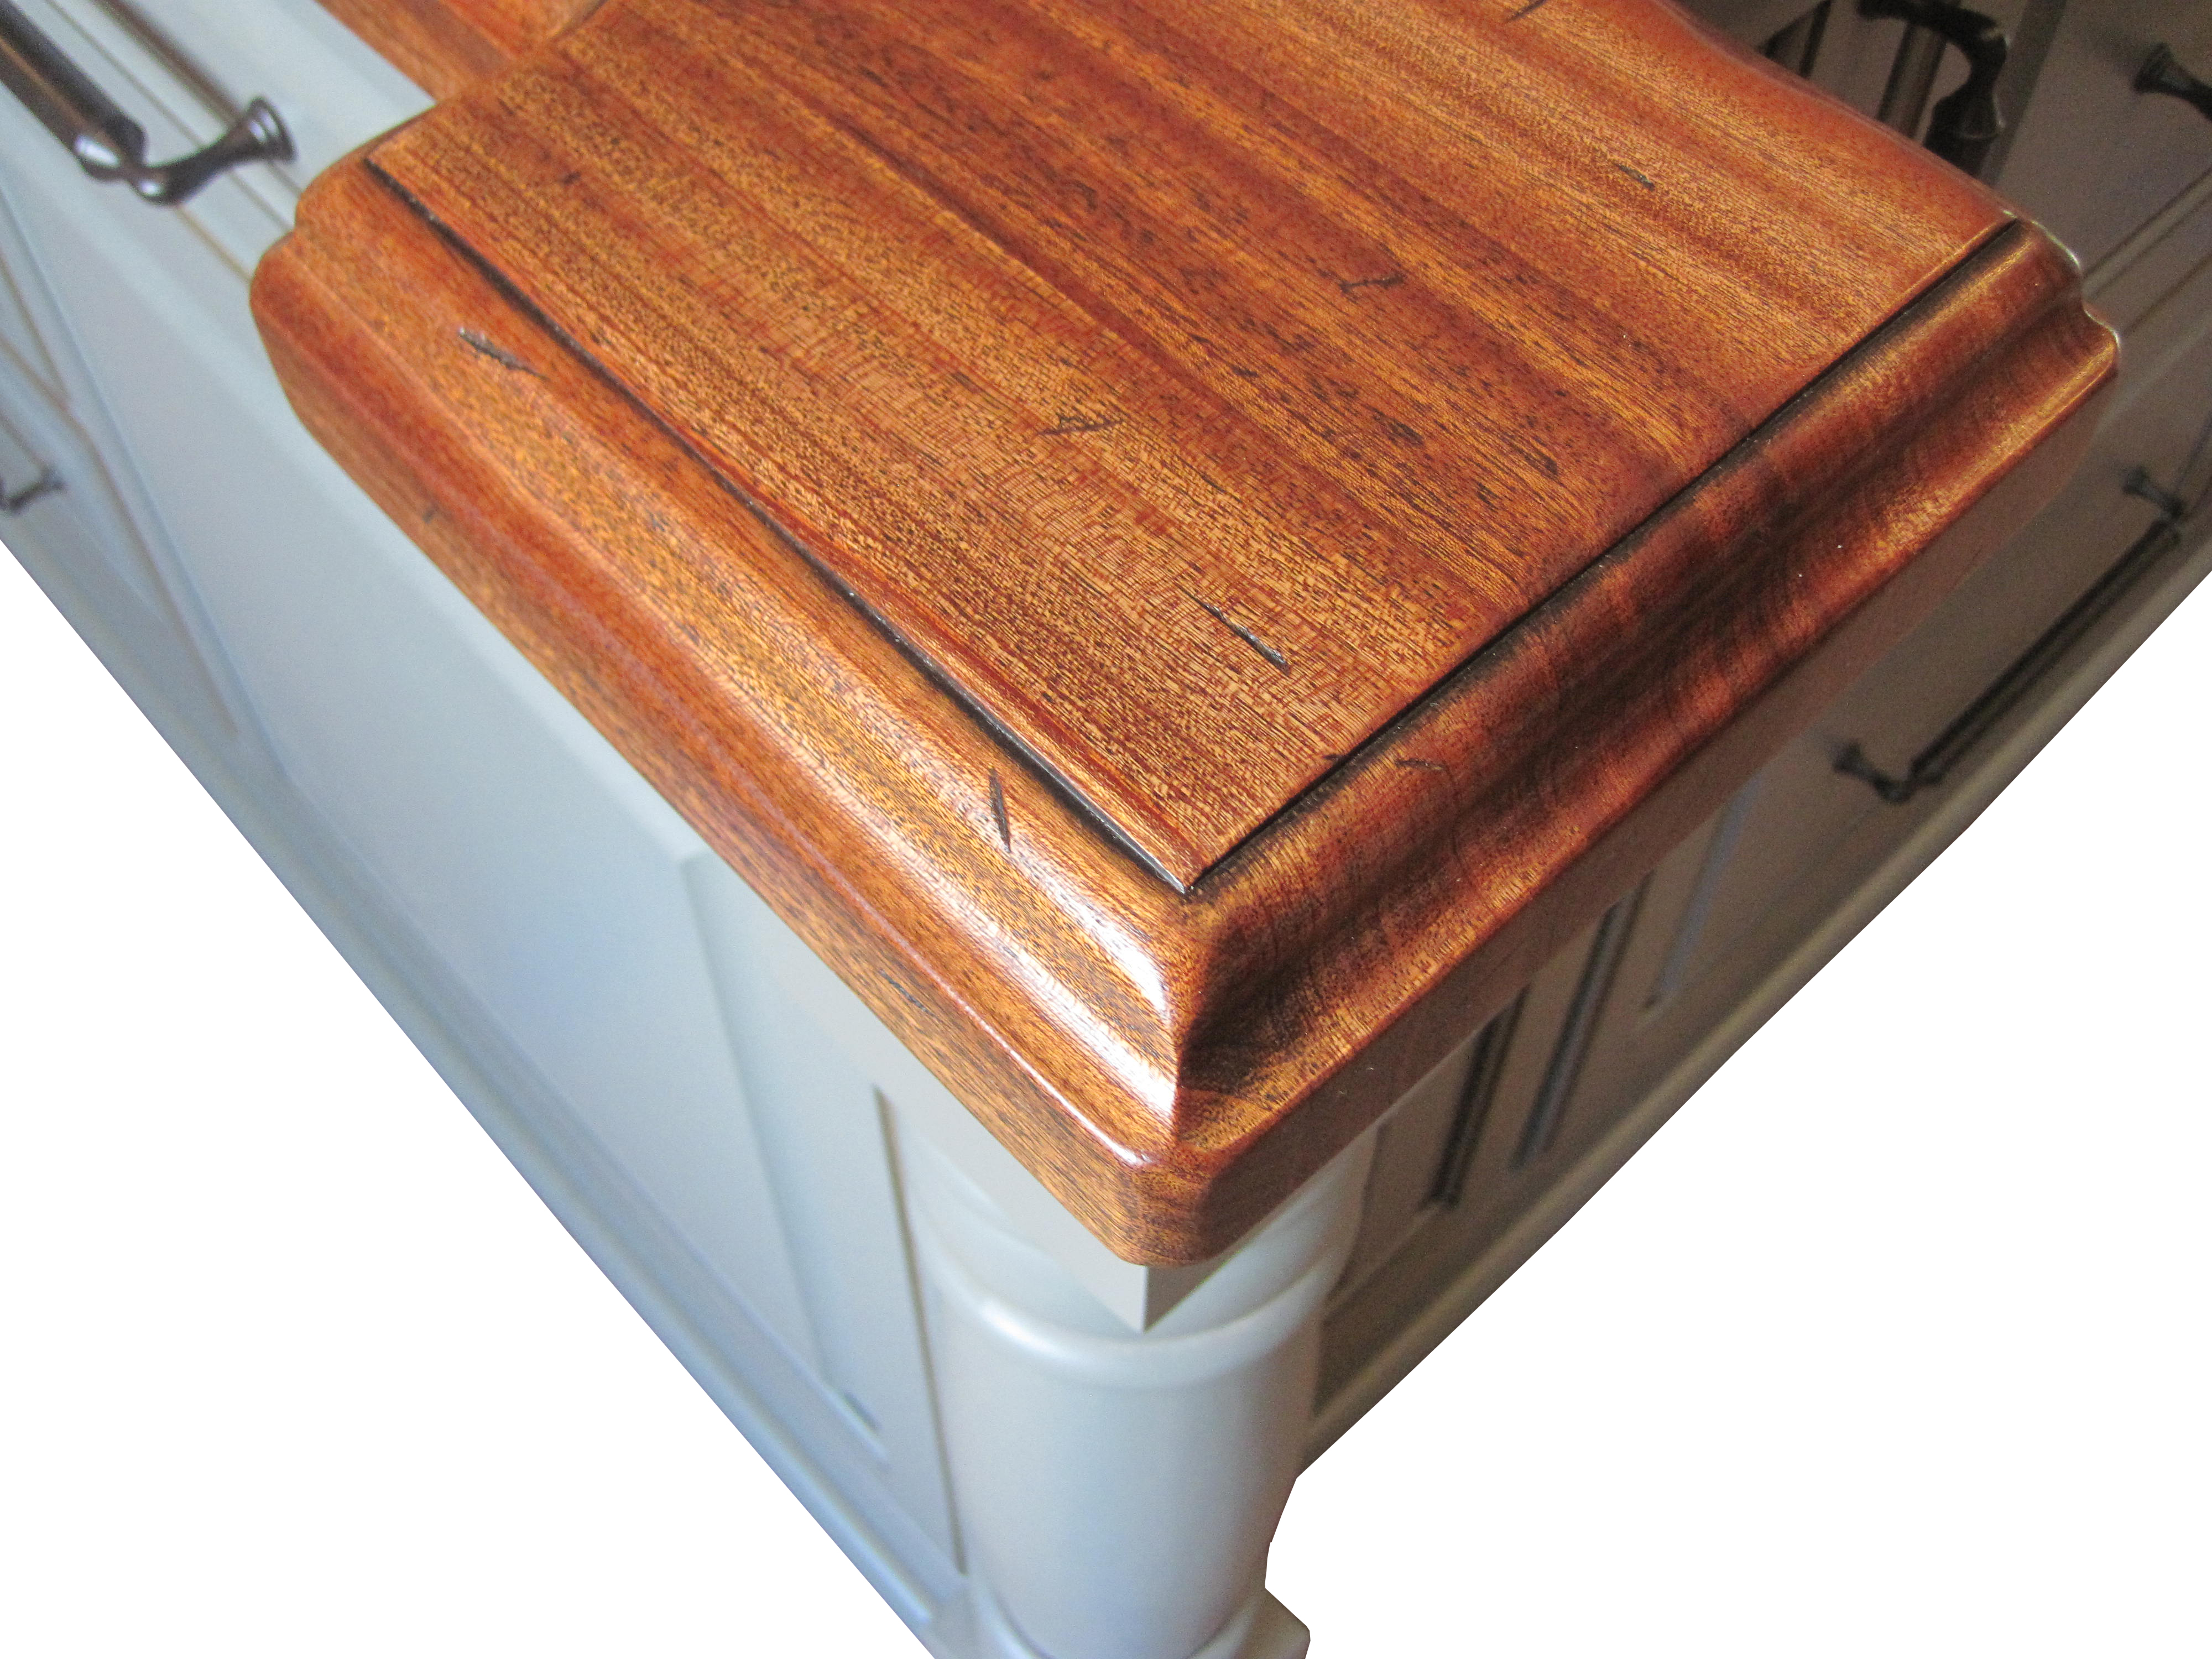 Super Distressed Wood Countertops By Grothouse